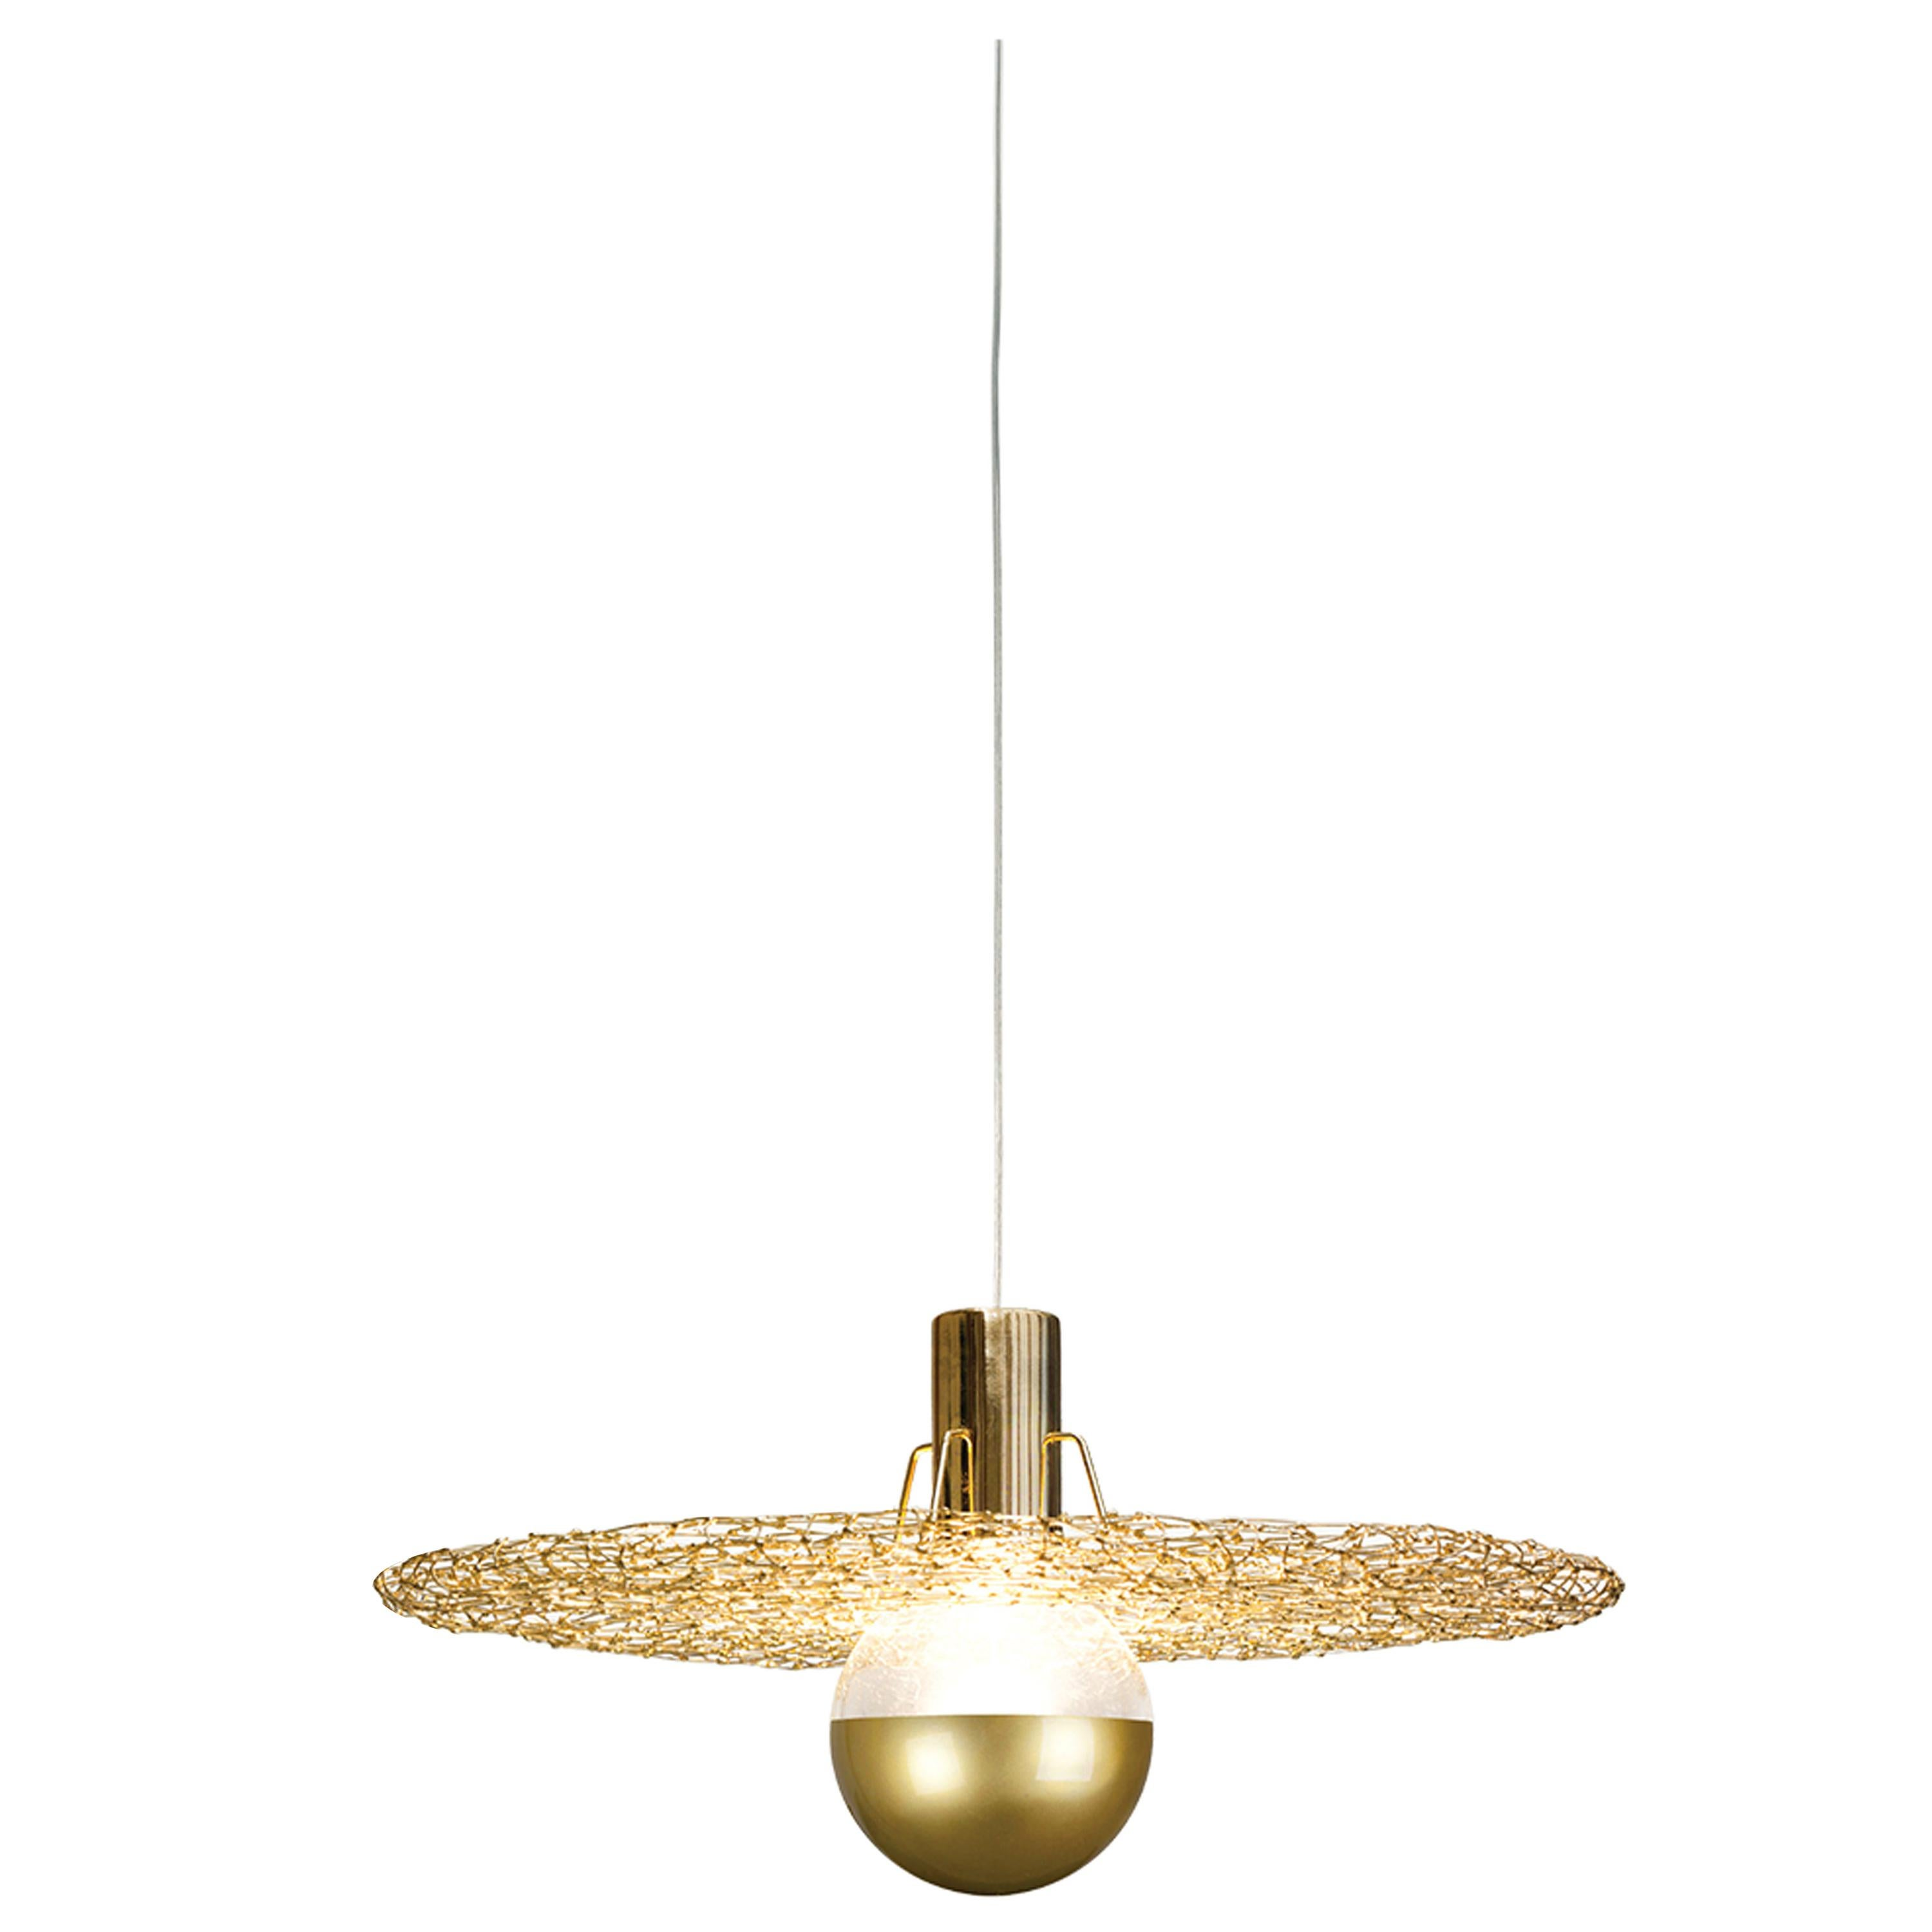 Auroral Pendant Light by Ango, 21st Century of Jewellery Series of Lighting